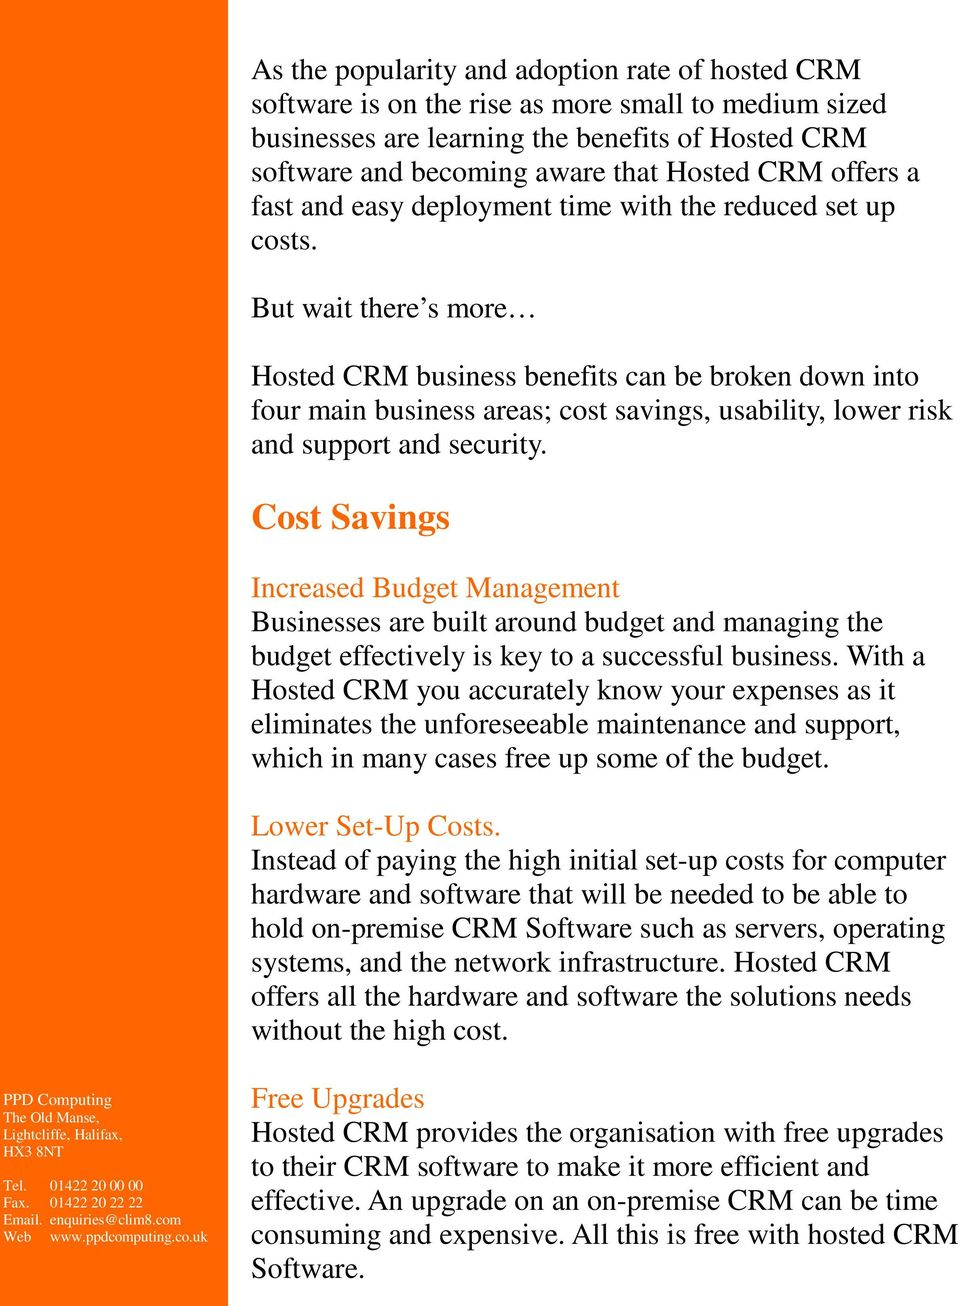 But wait there s more Hosted CRM business benefits can be broken down into four main business areas; cost savings, usability, lower risk and support and security.